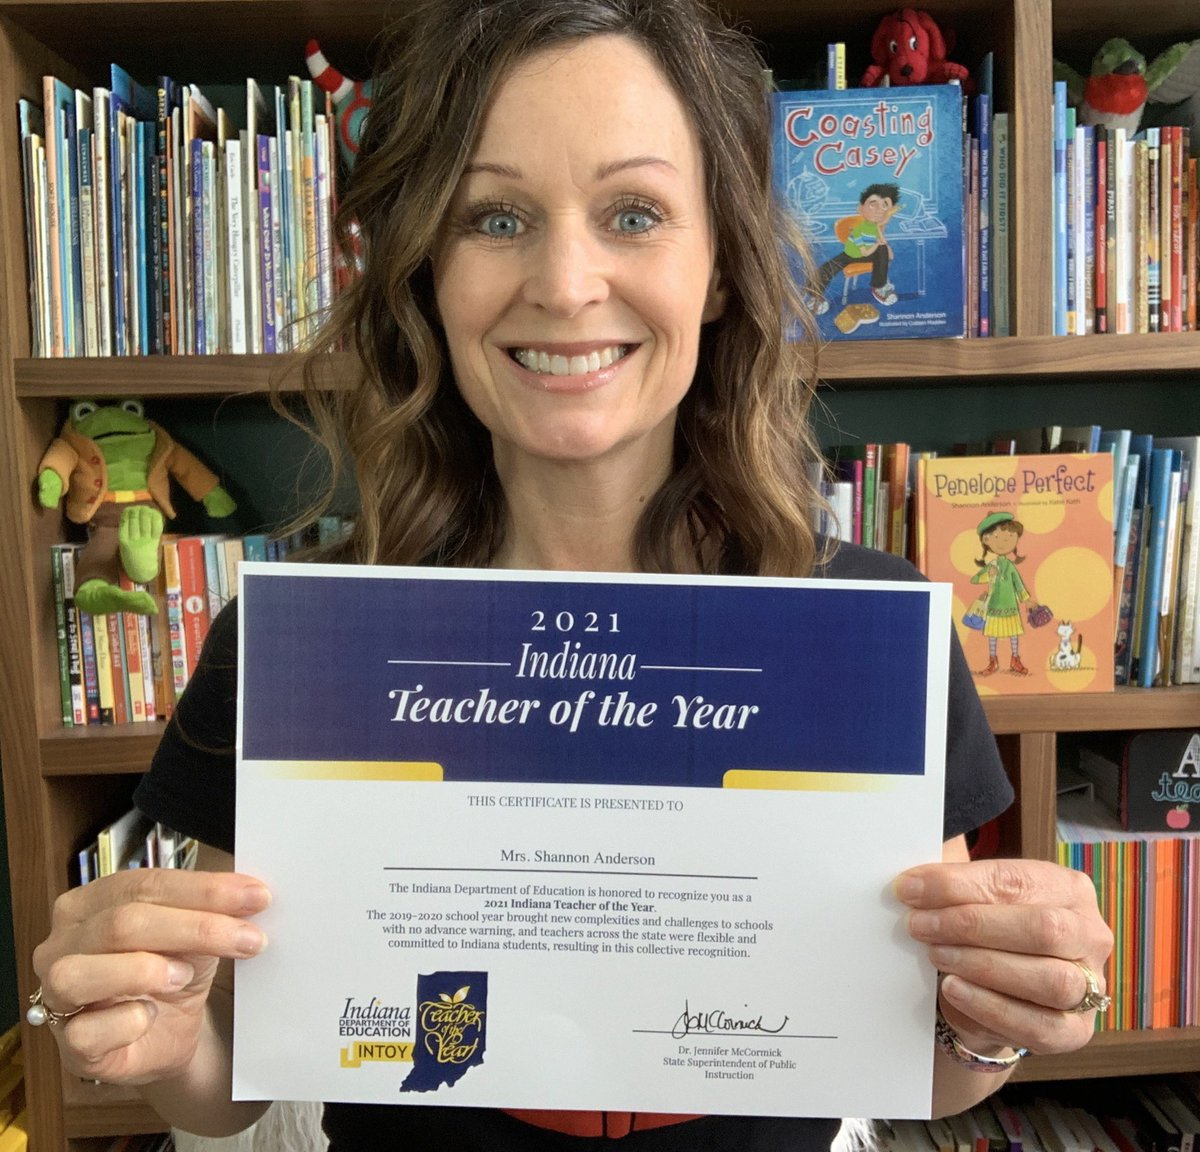 So this happened.  Ok, so every teacher in Indiana got one, but still! Never thought I'd get one of these. #blessed pic.twitter.com/WQoybOVjZa